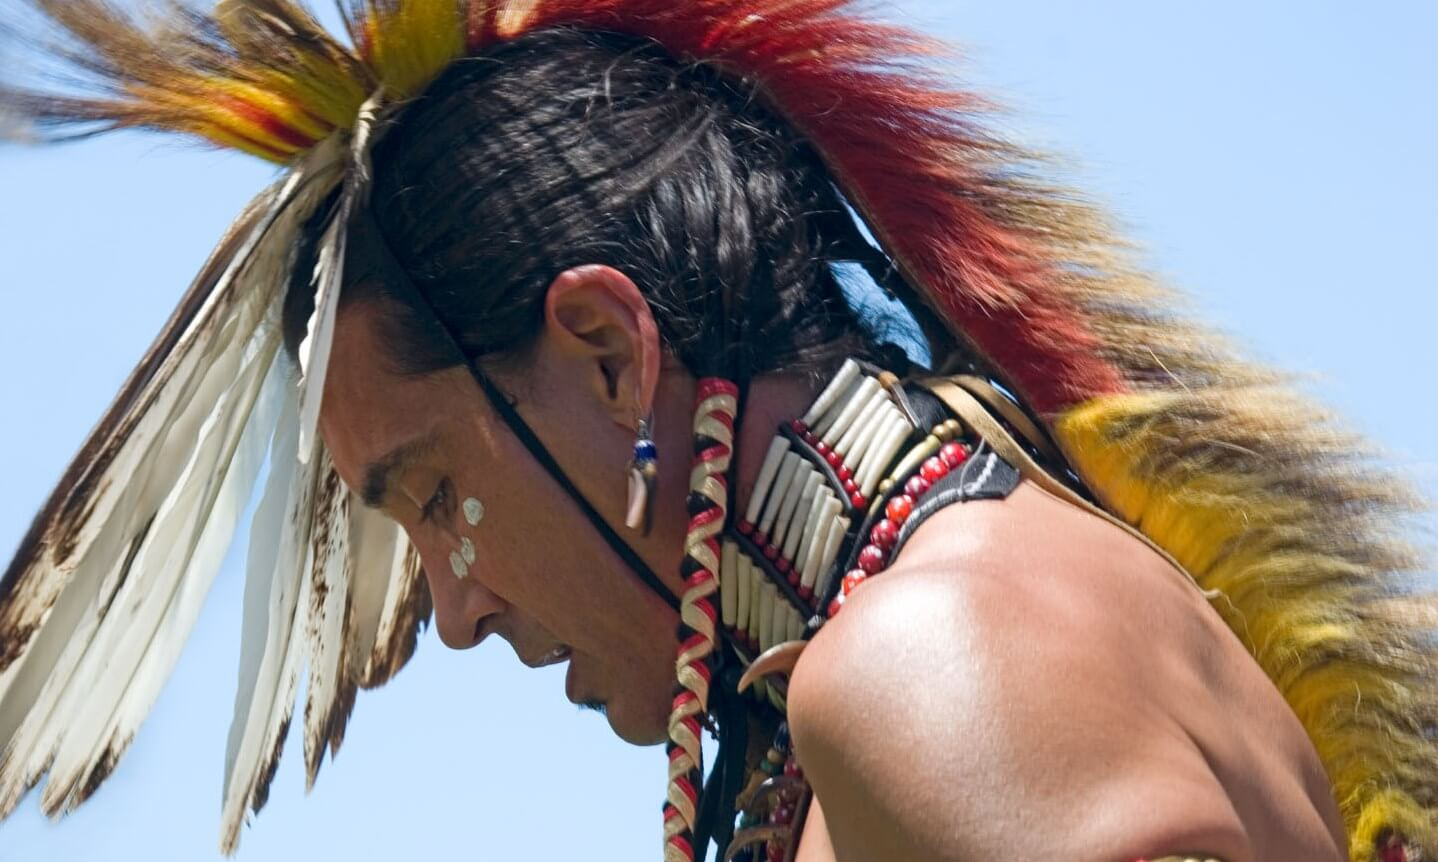 Profile of a Native American wearing a feathered headdress